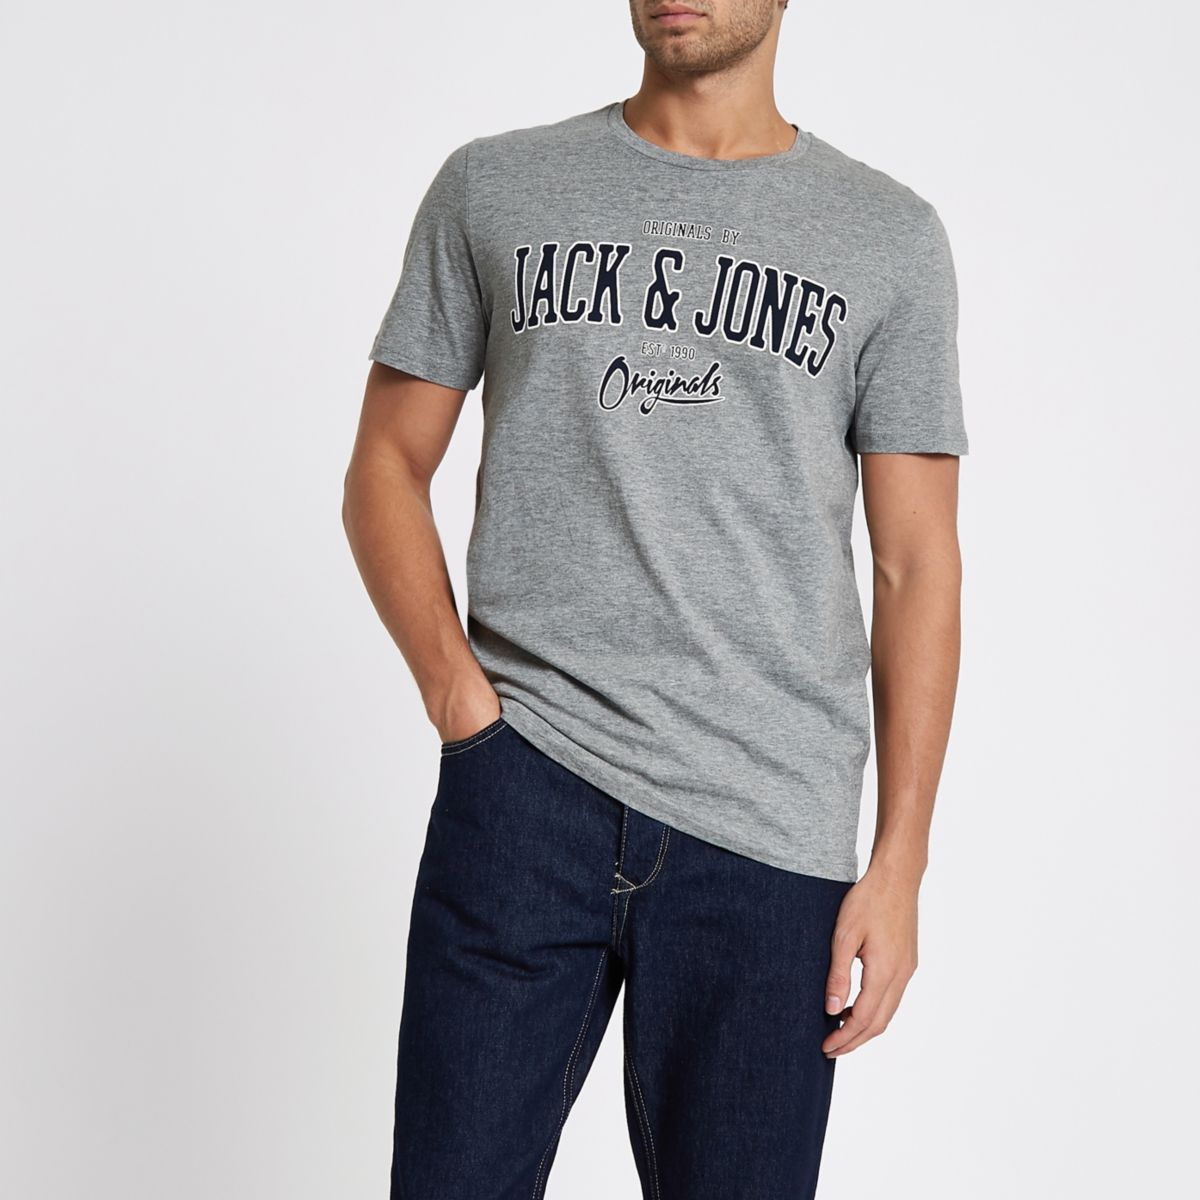 Jack & Jones Originals grey print T-shirt